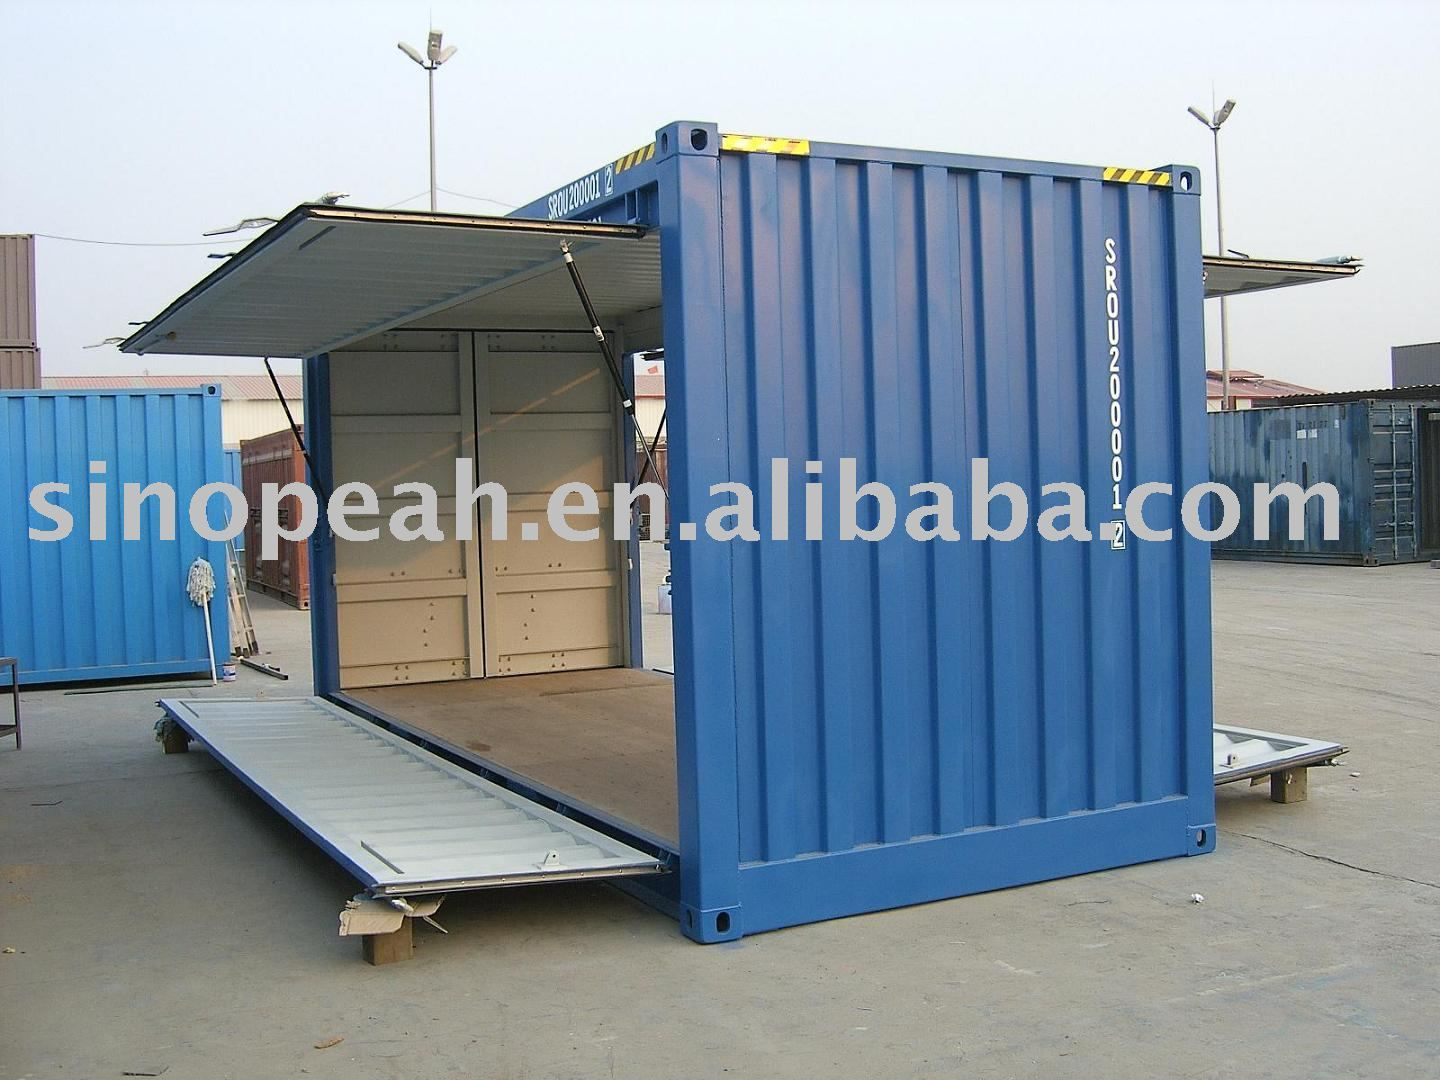 20ft Swing Door Shipping Container Photo Detailed About 20ft Swing Door Shipping Con Shipping Container Sheds Shipping Container Dimensions Shipping Container